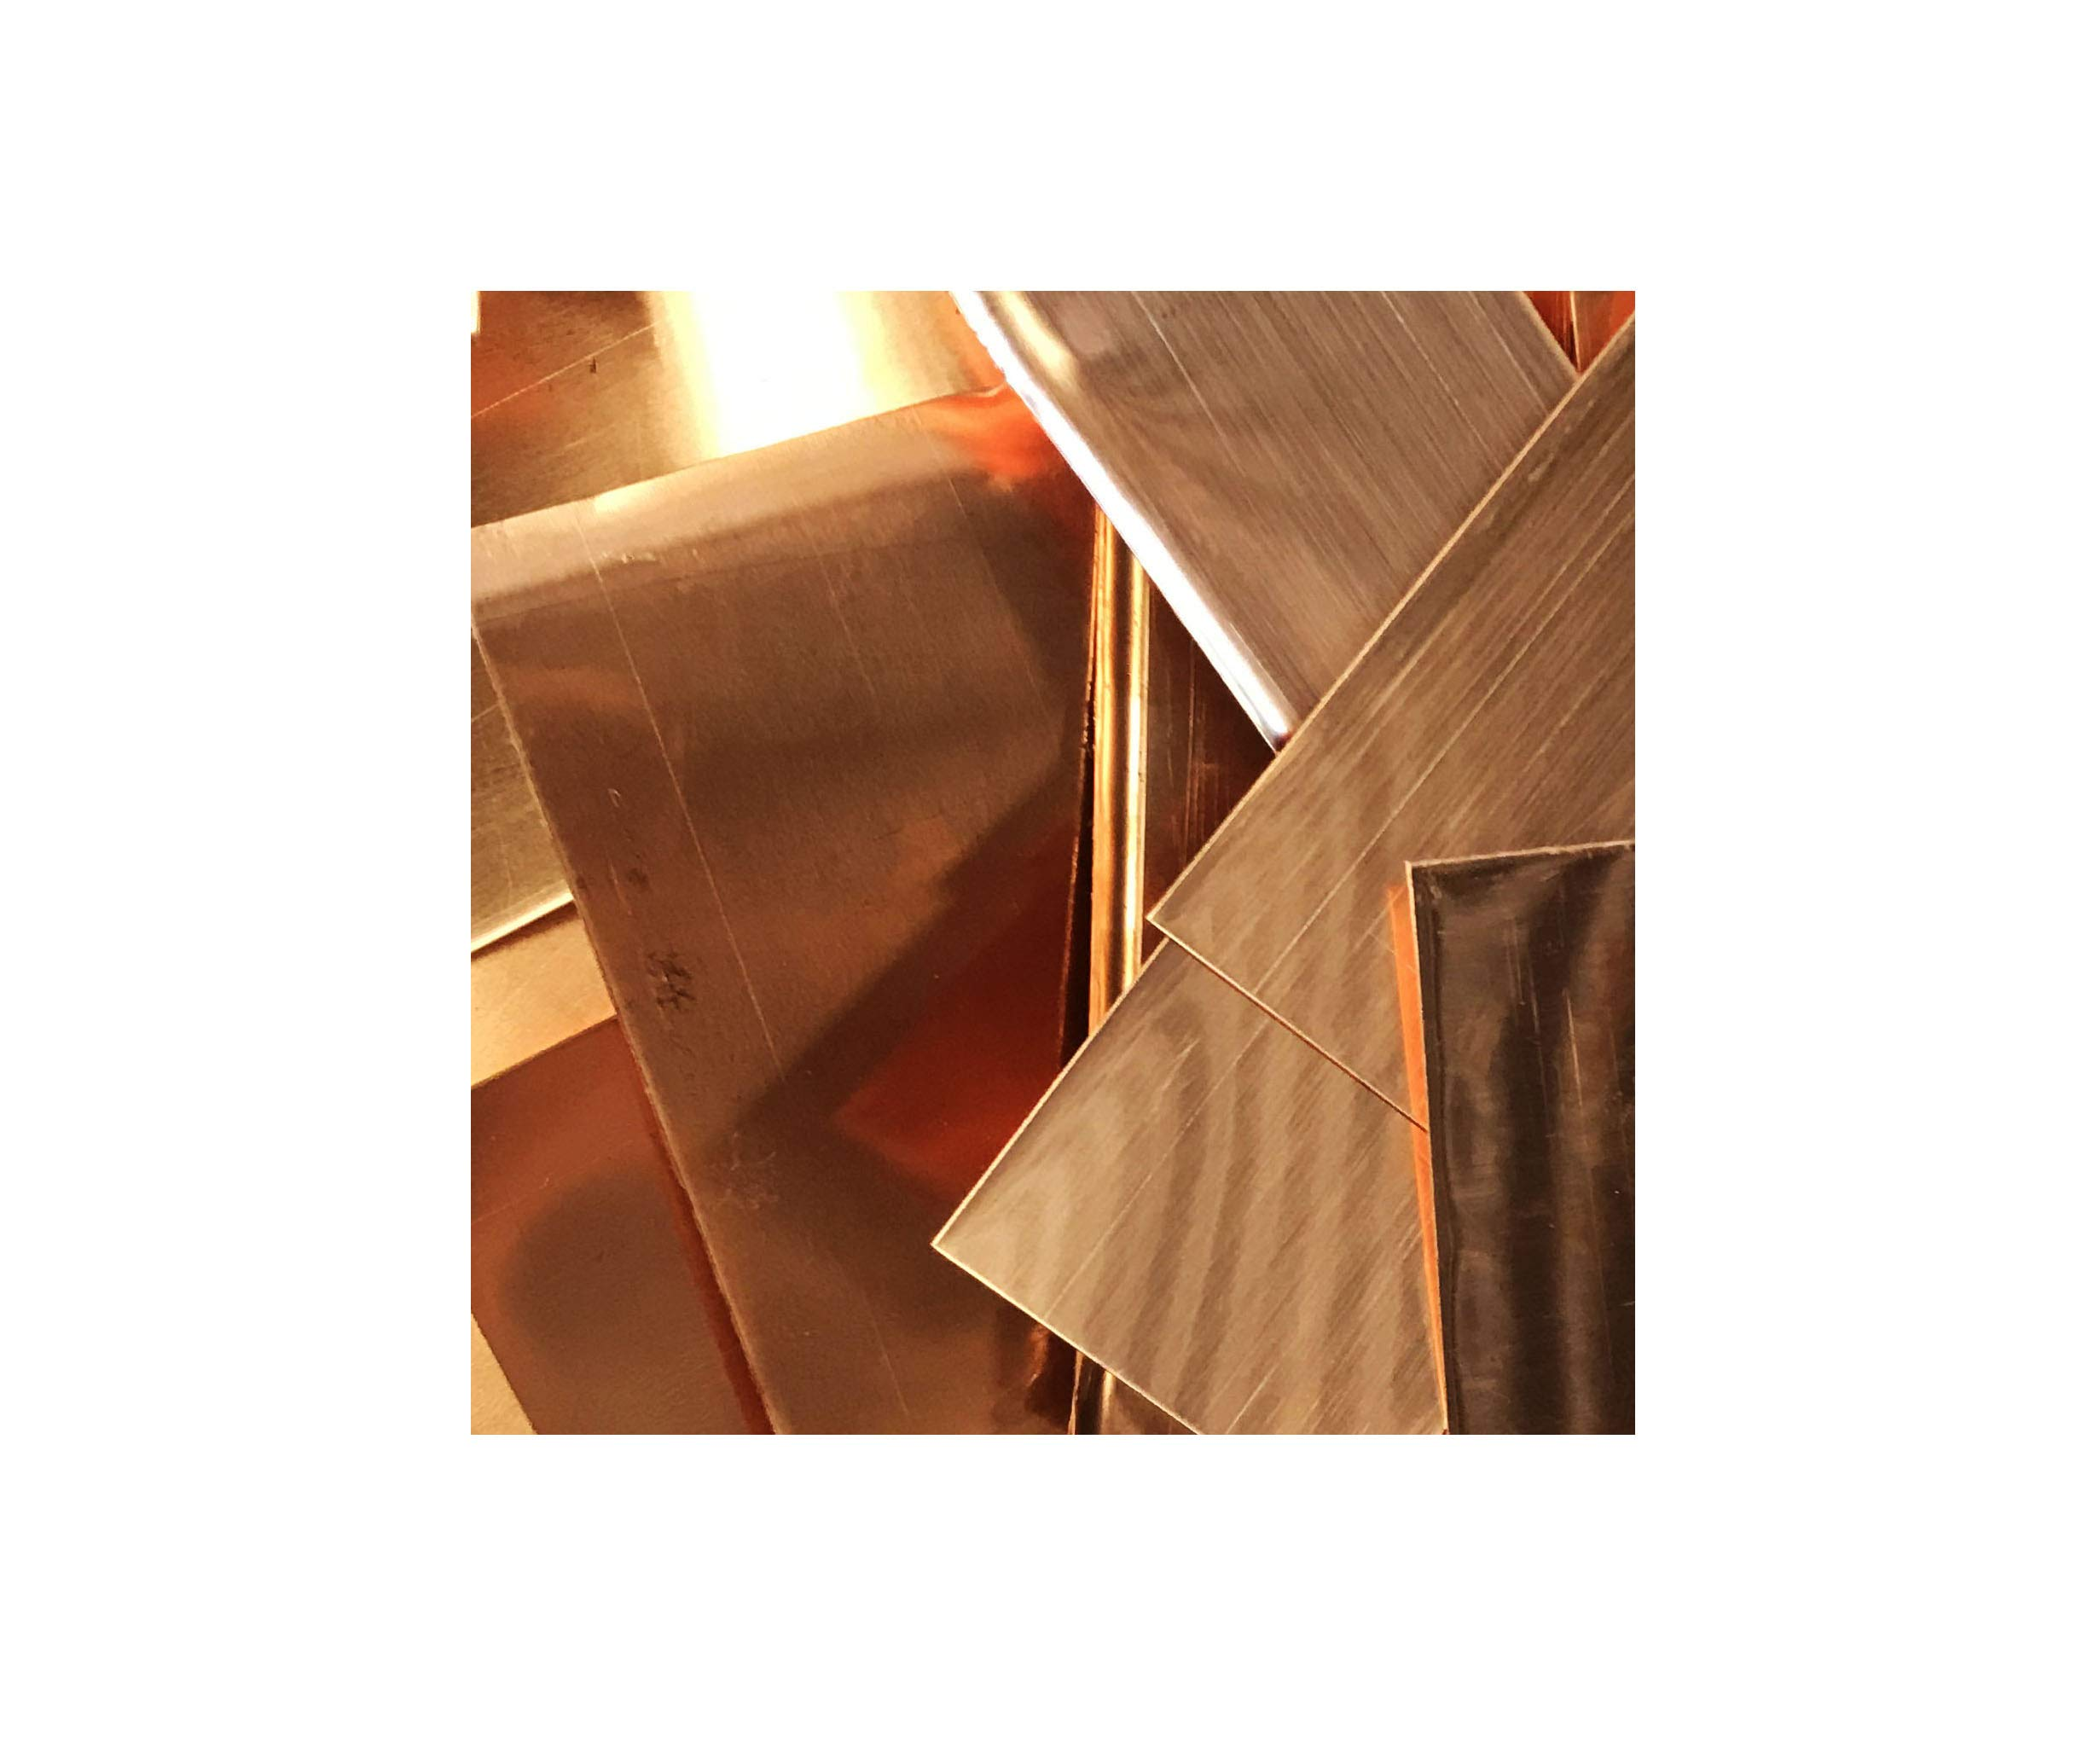 Copper Sheet Metal Scraps - 1lb Package of Various Size Copper Flat Pieces - 16 Oz Lead-Free Copper - 99.9% Pure Copper Sheet Metal - 24 Gauge Copper